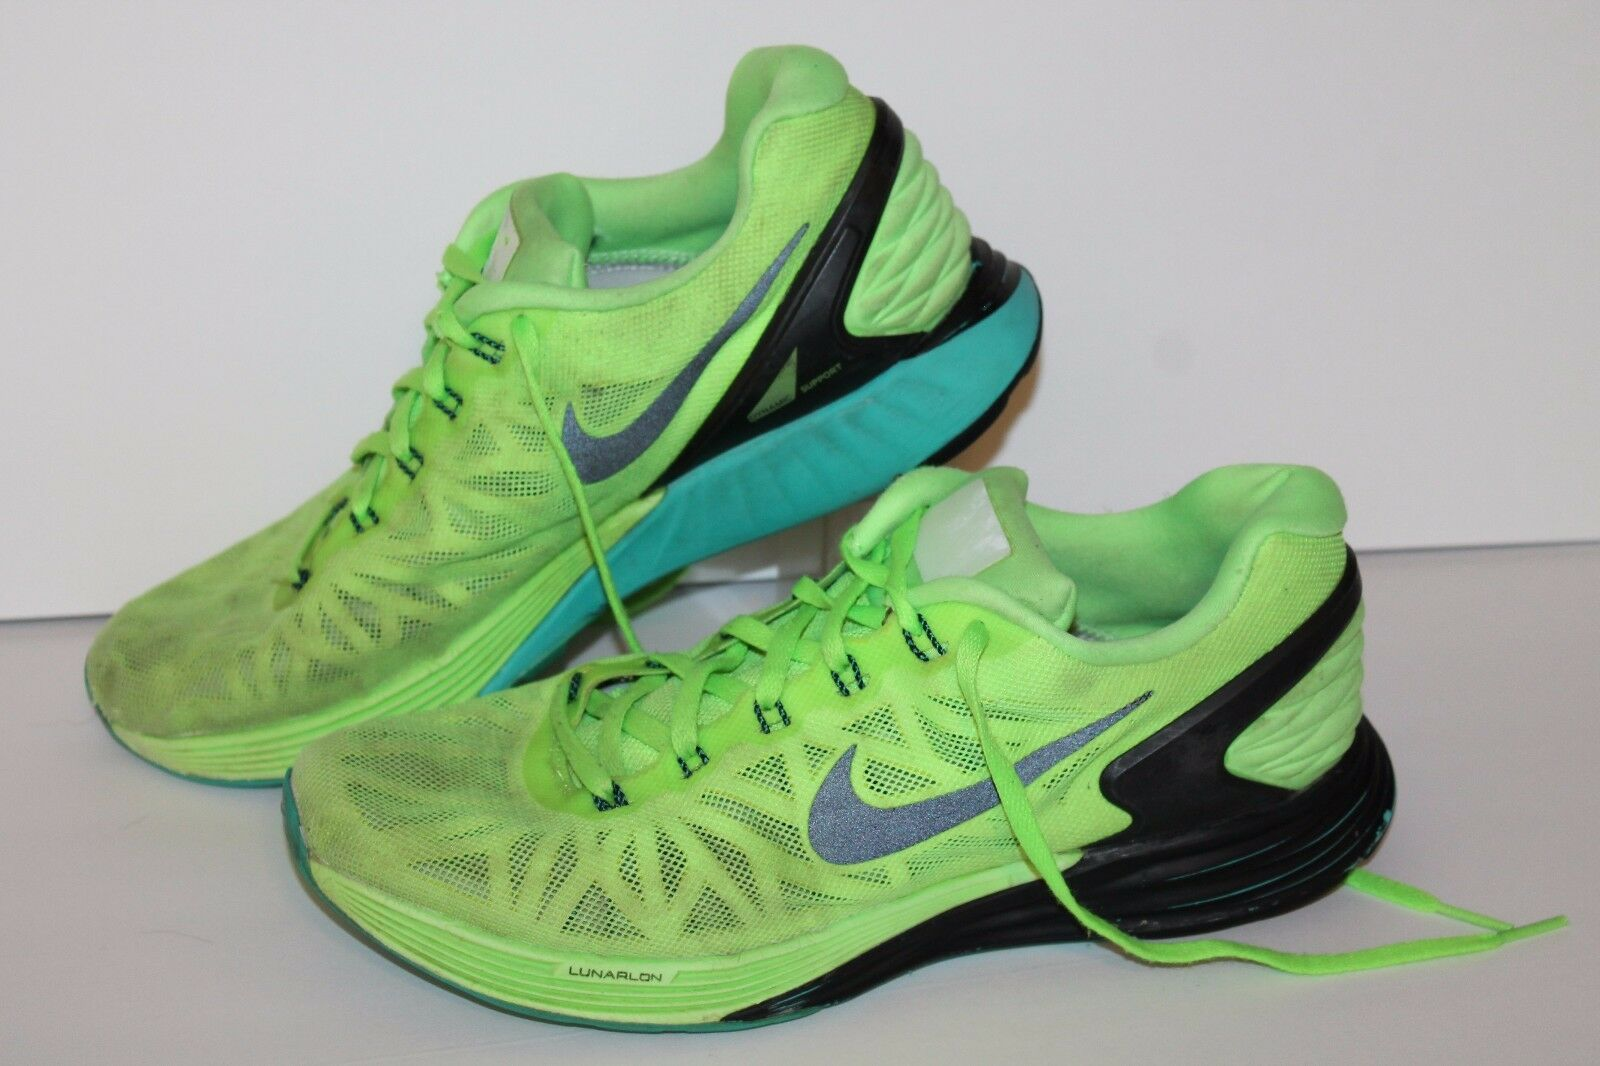 Nike Lunarglide 6 Running Shoes, Flash Lime/Black, Men's US 8.5  Seasonal clearance sale